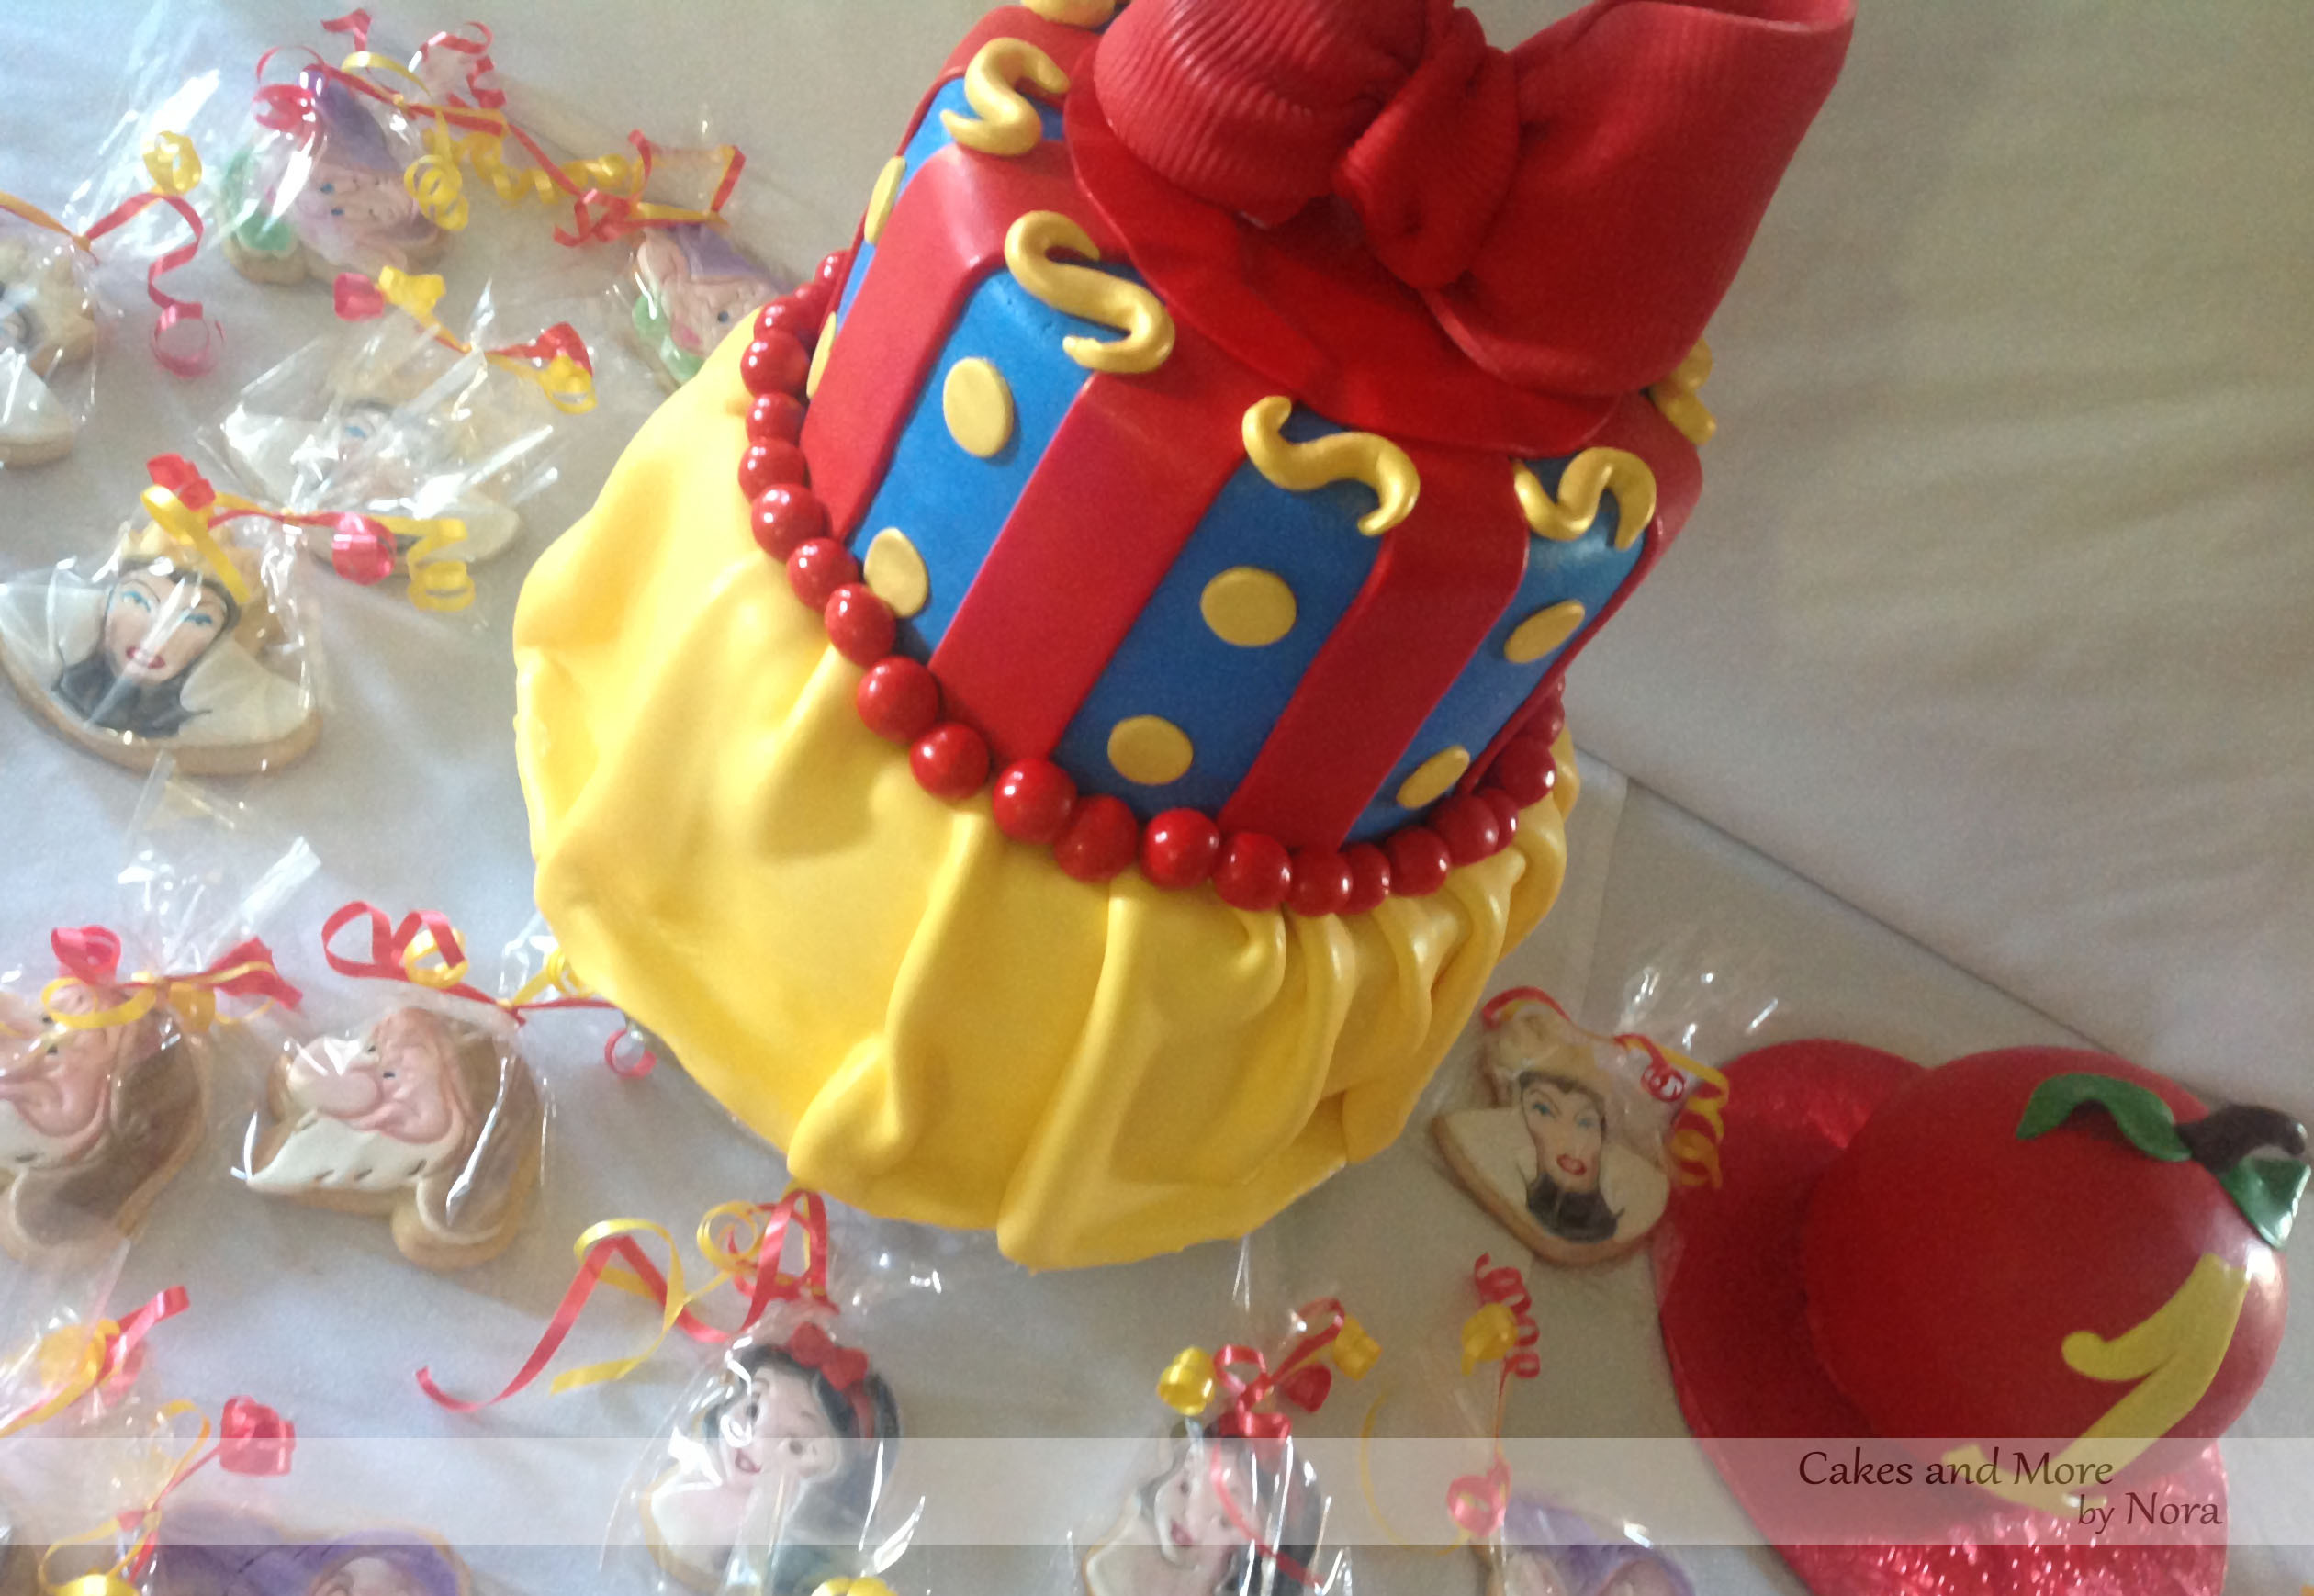 Best ideas about White Birthday Cake . Save or Pin A Snow White 1st Birthday – Cakes and More by Nora Now.